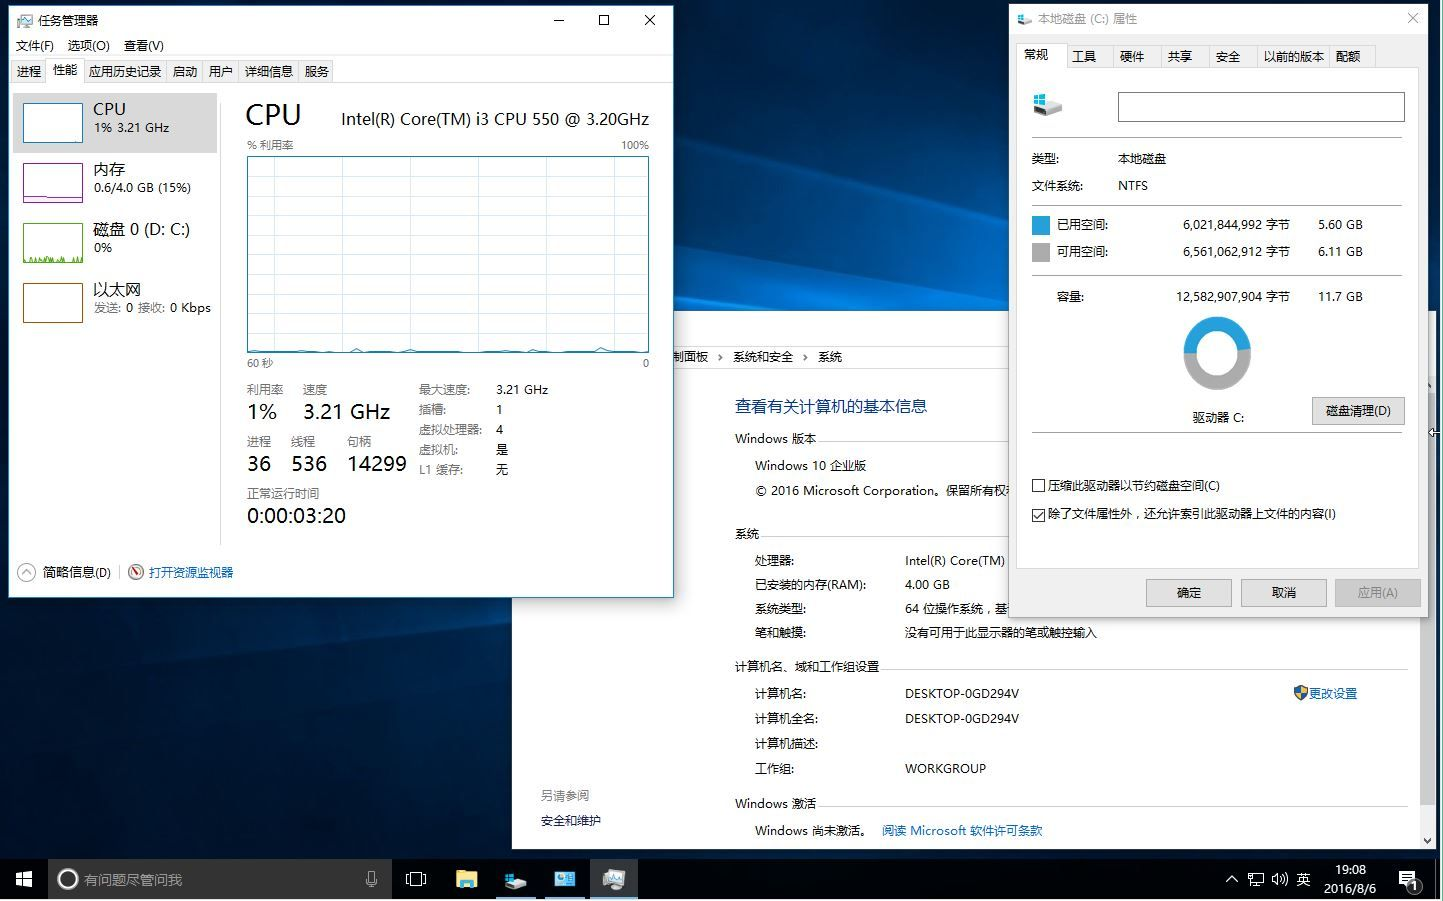 Windows 10 Enterprise 14393.51 x86-x64 zh-CN LITE 02